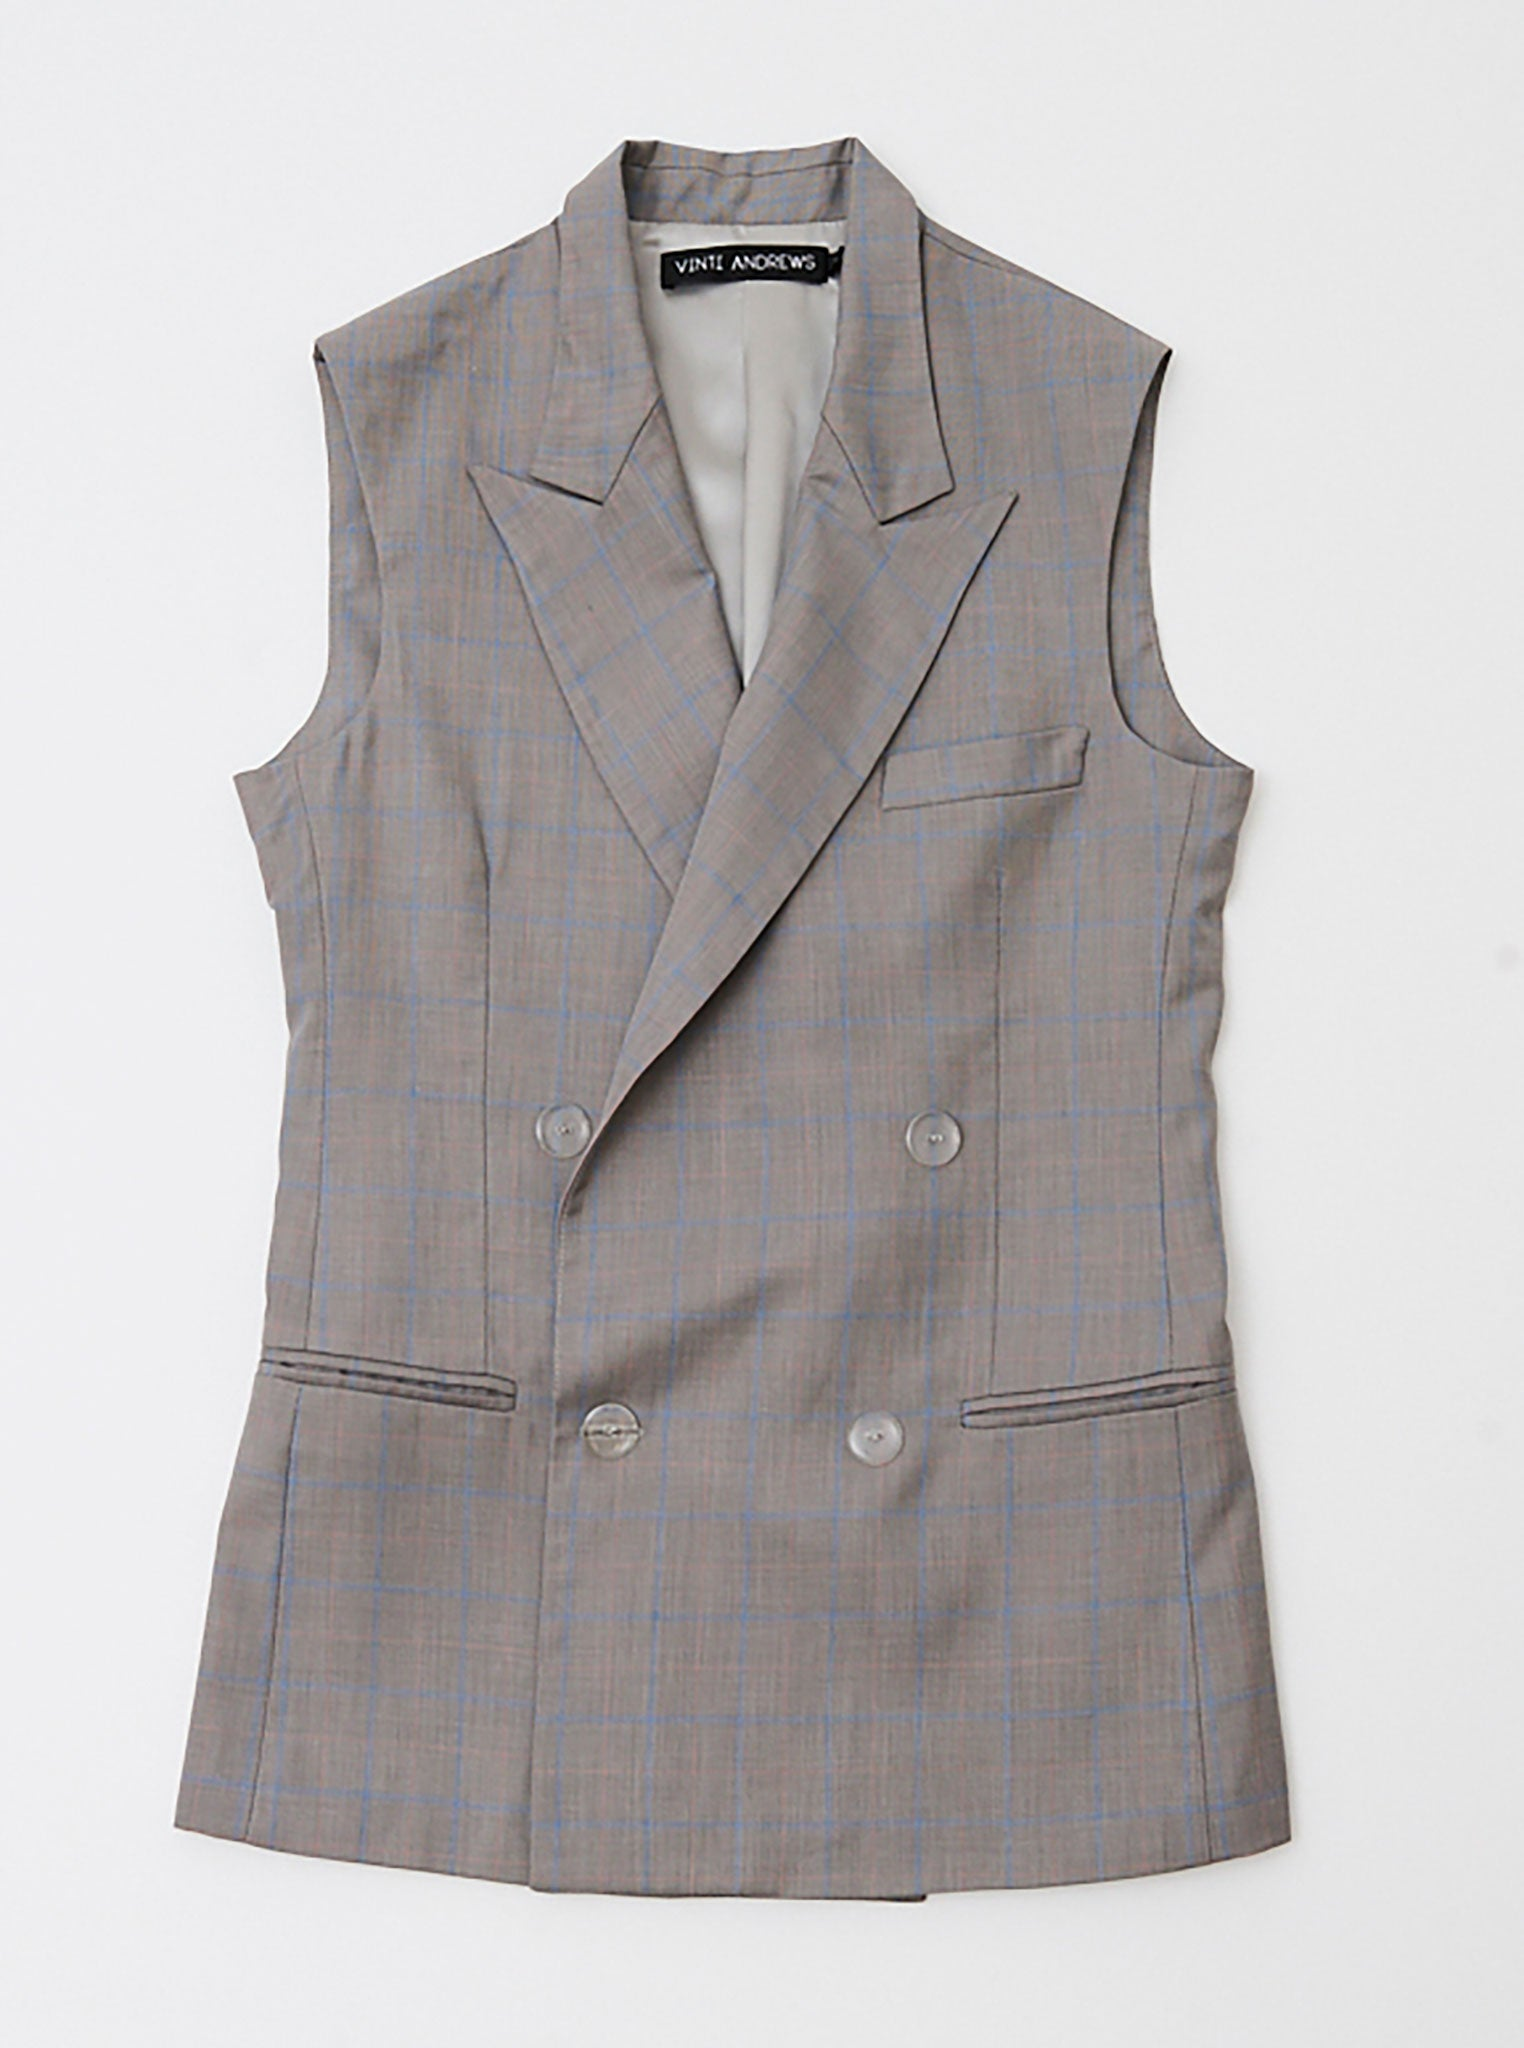 Vinti Andrews Sleeveless Tailor Jacket